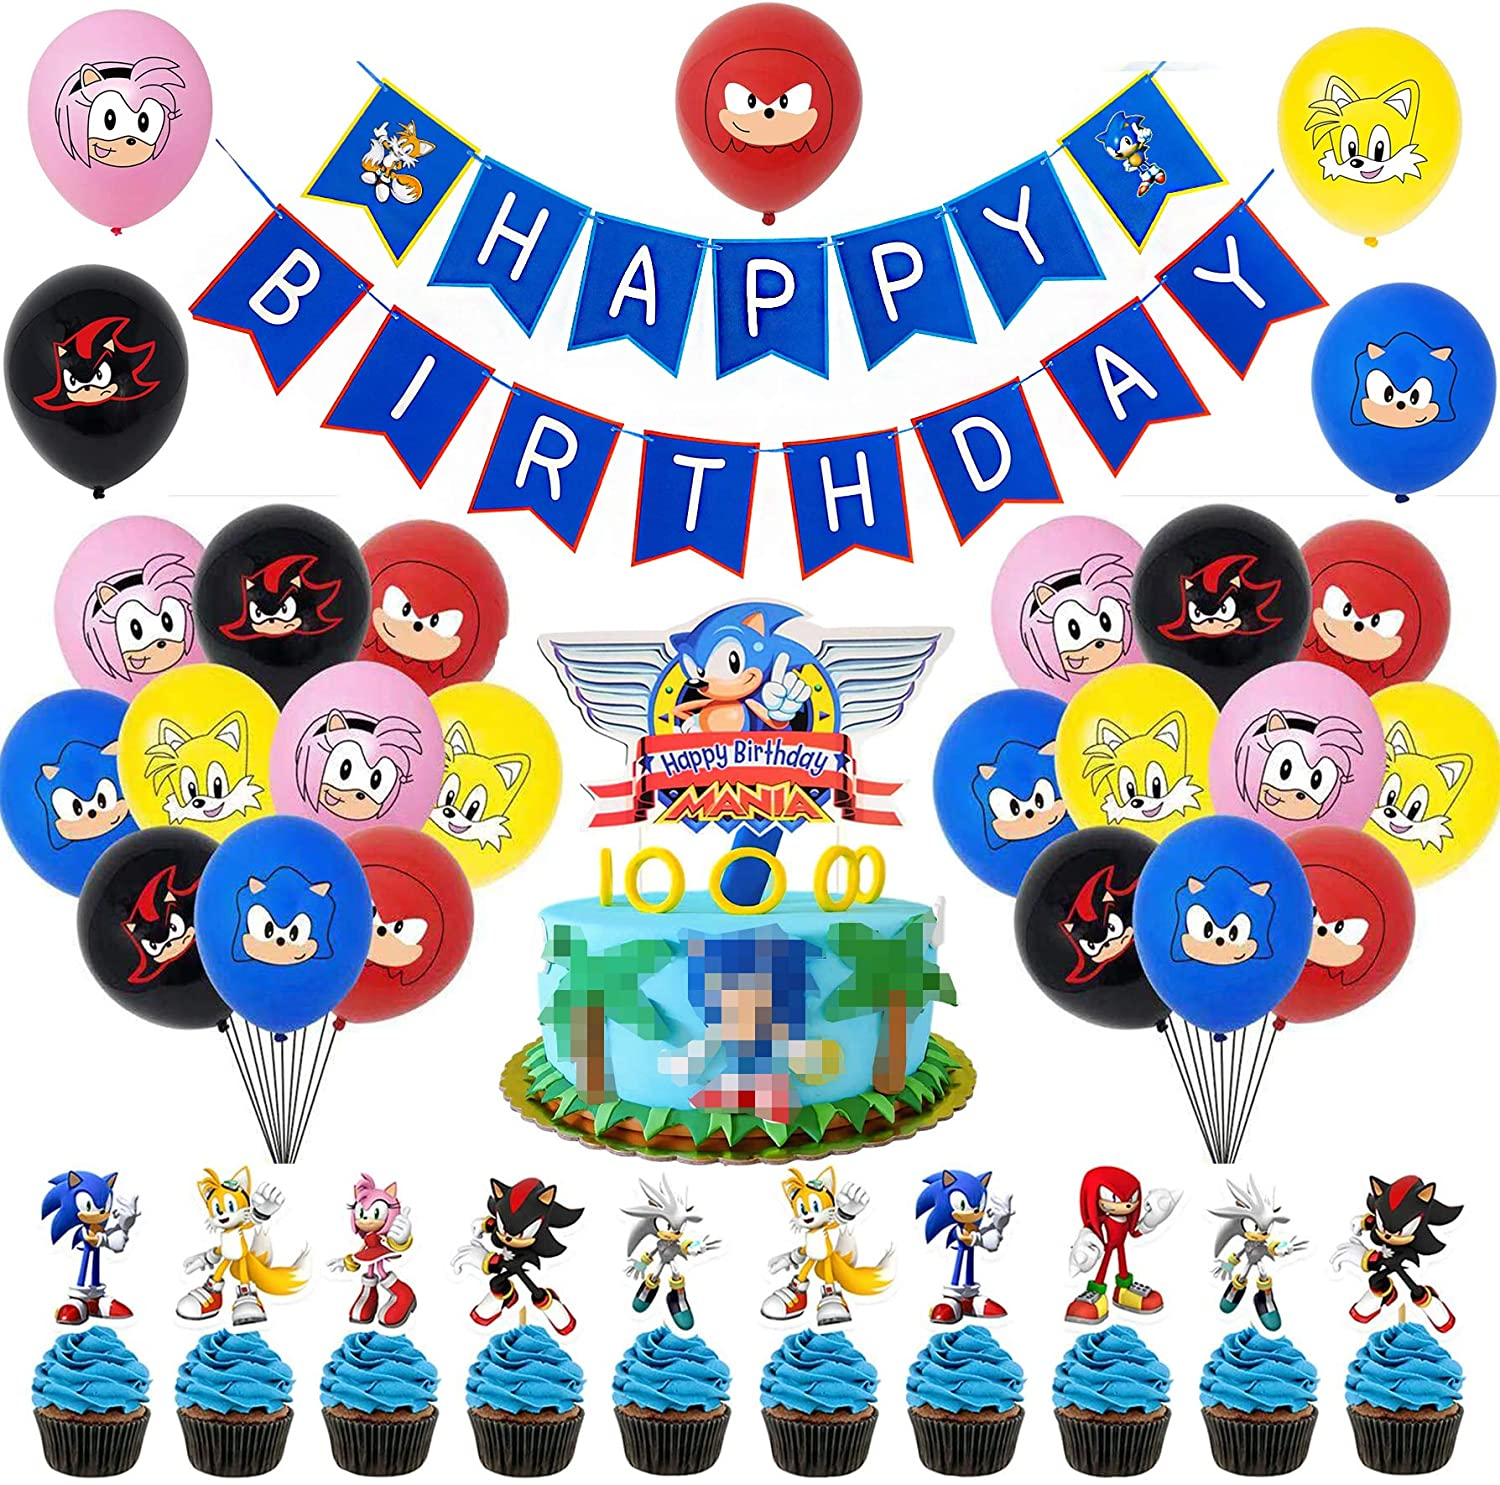 Sonic Video Game Birthday Party Supplies Decorations Pack Includes Happy Birthday Banner Latex Balloons Cake Topper Cupcake Toppers Walmart Canada